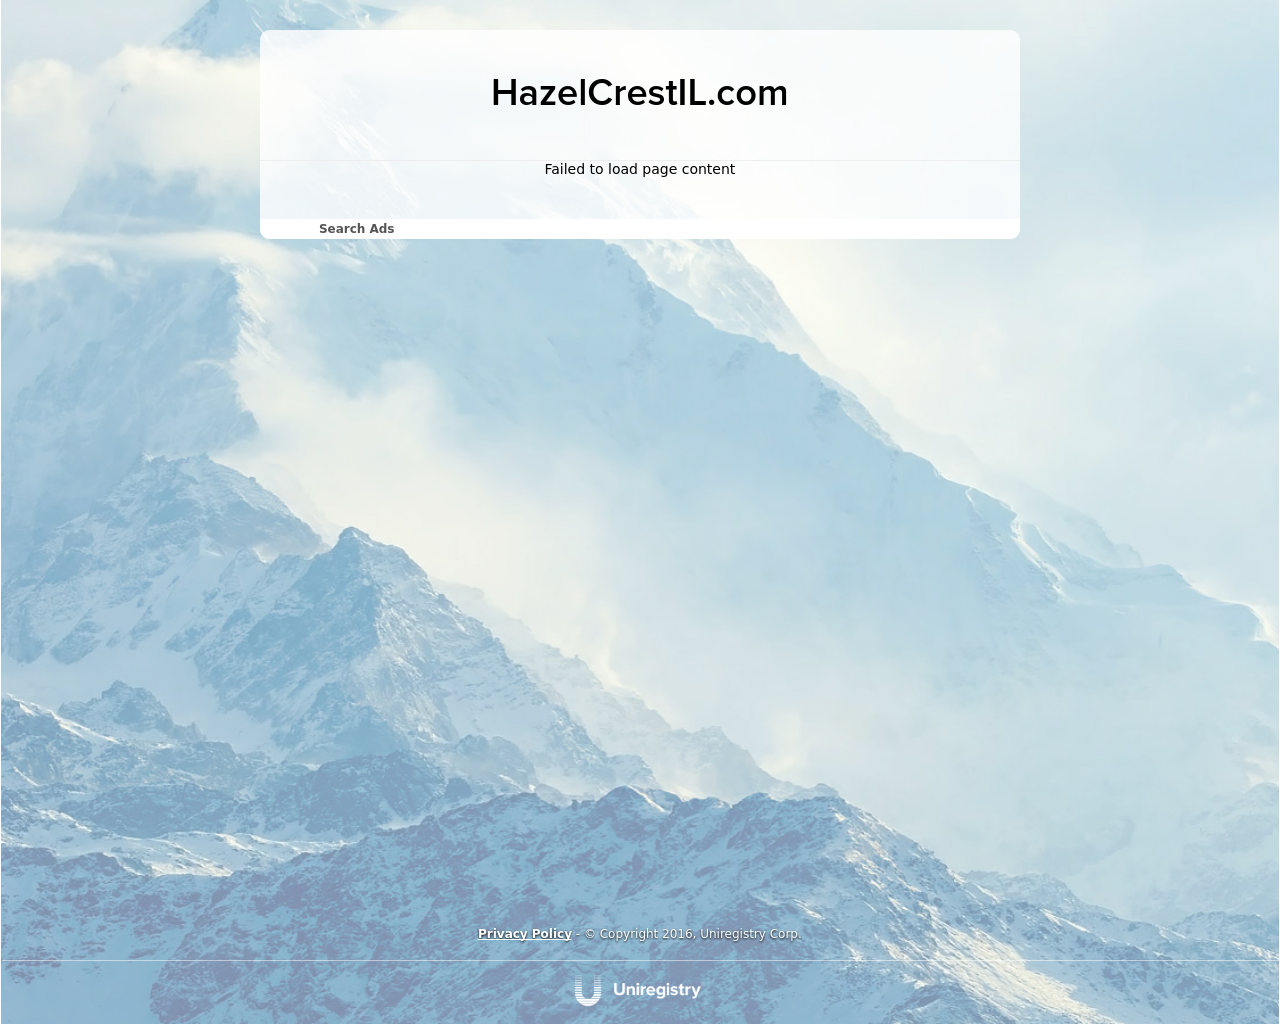 HazelCrestIL.com-Advertising-Reviews-Pricing